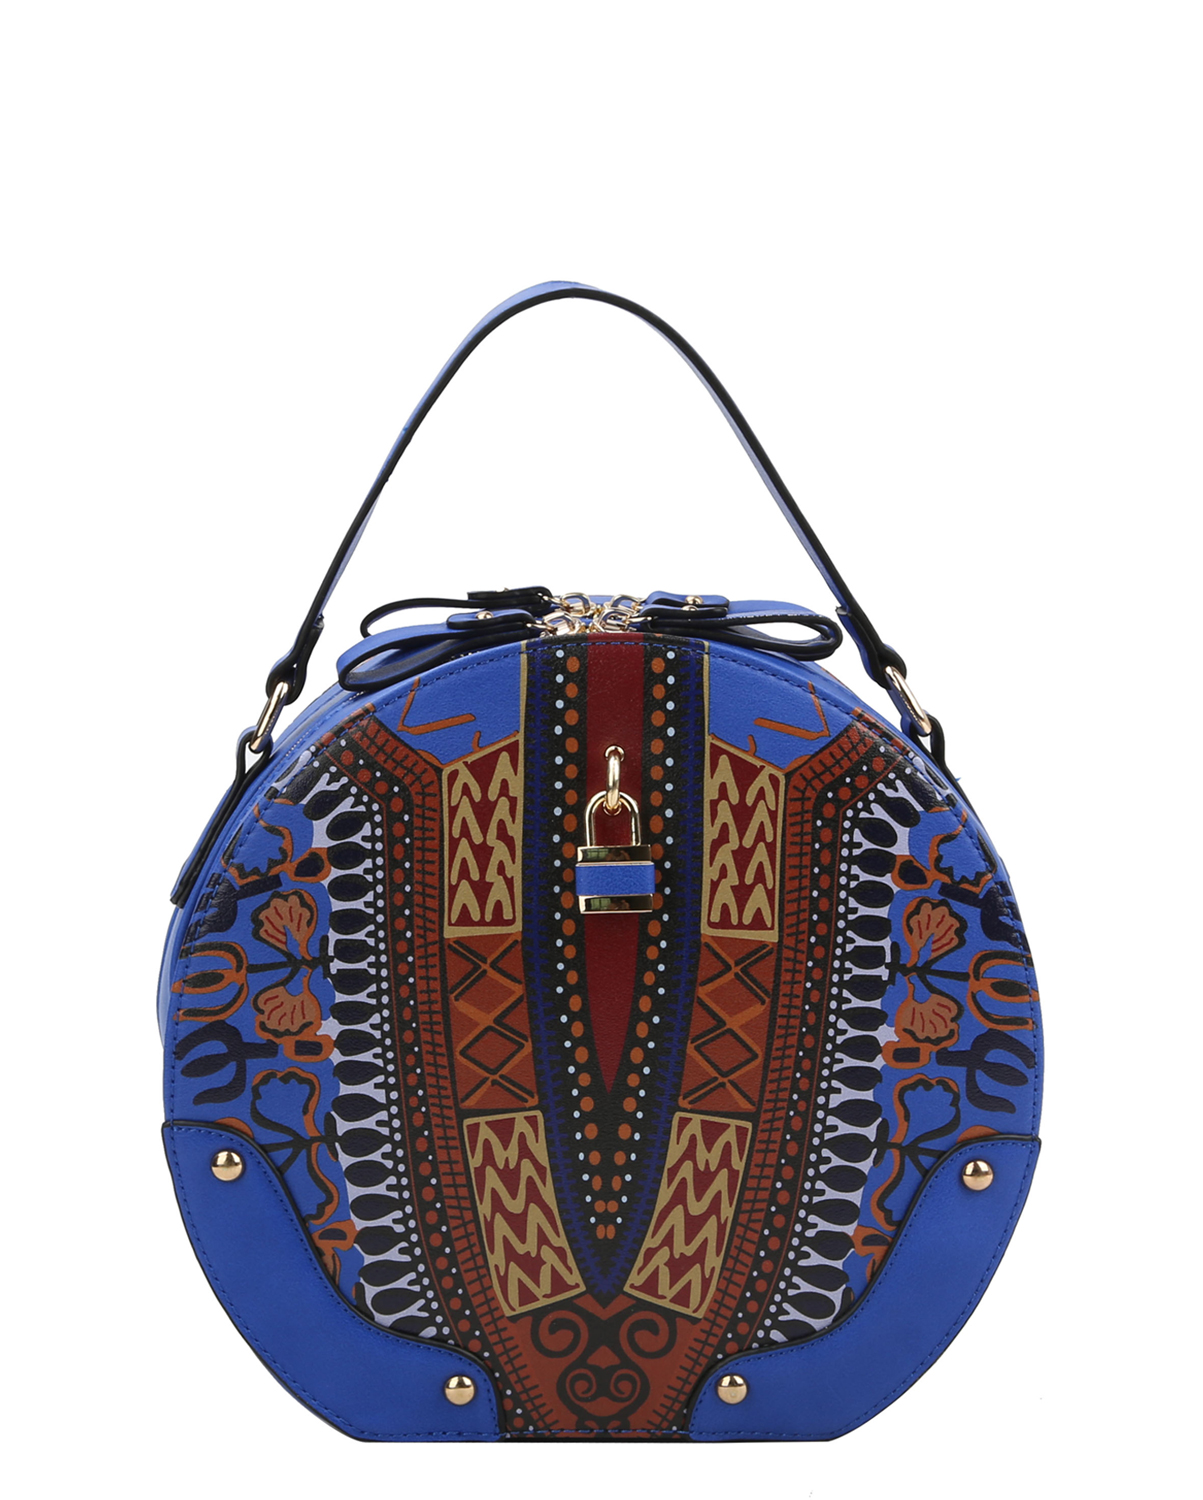 F0253(RBL)-wholesale-handbag-dashiki-ethnic-tribal-padlock-multicolor-stud-compartment-vegan-circle-shaped-gold(0).jpg